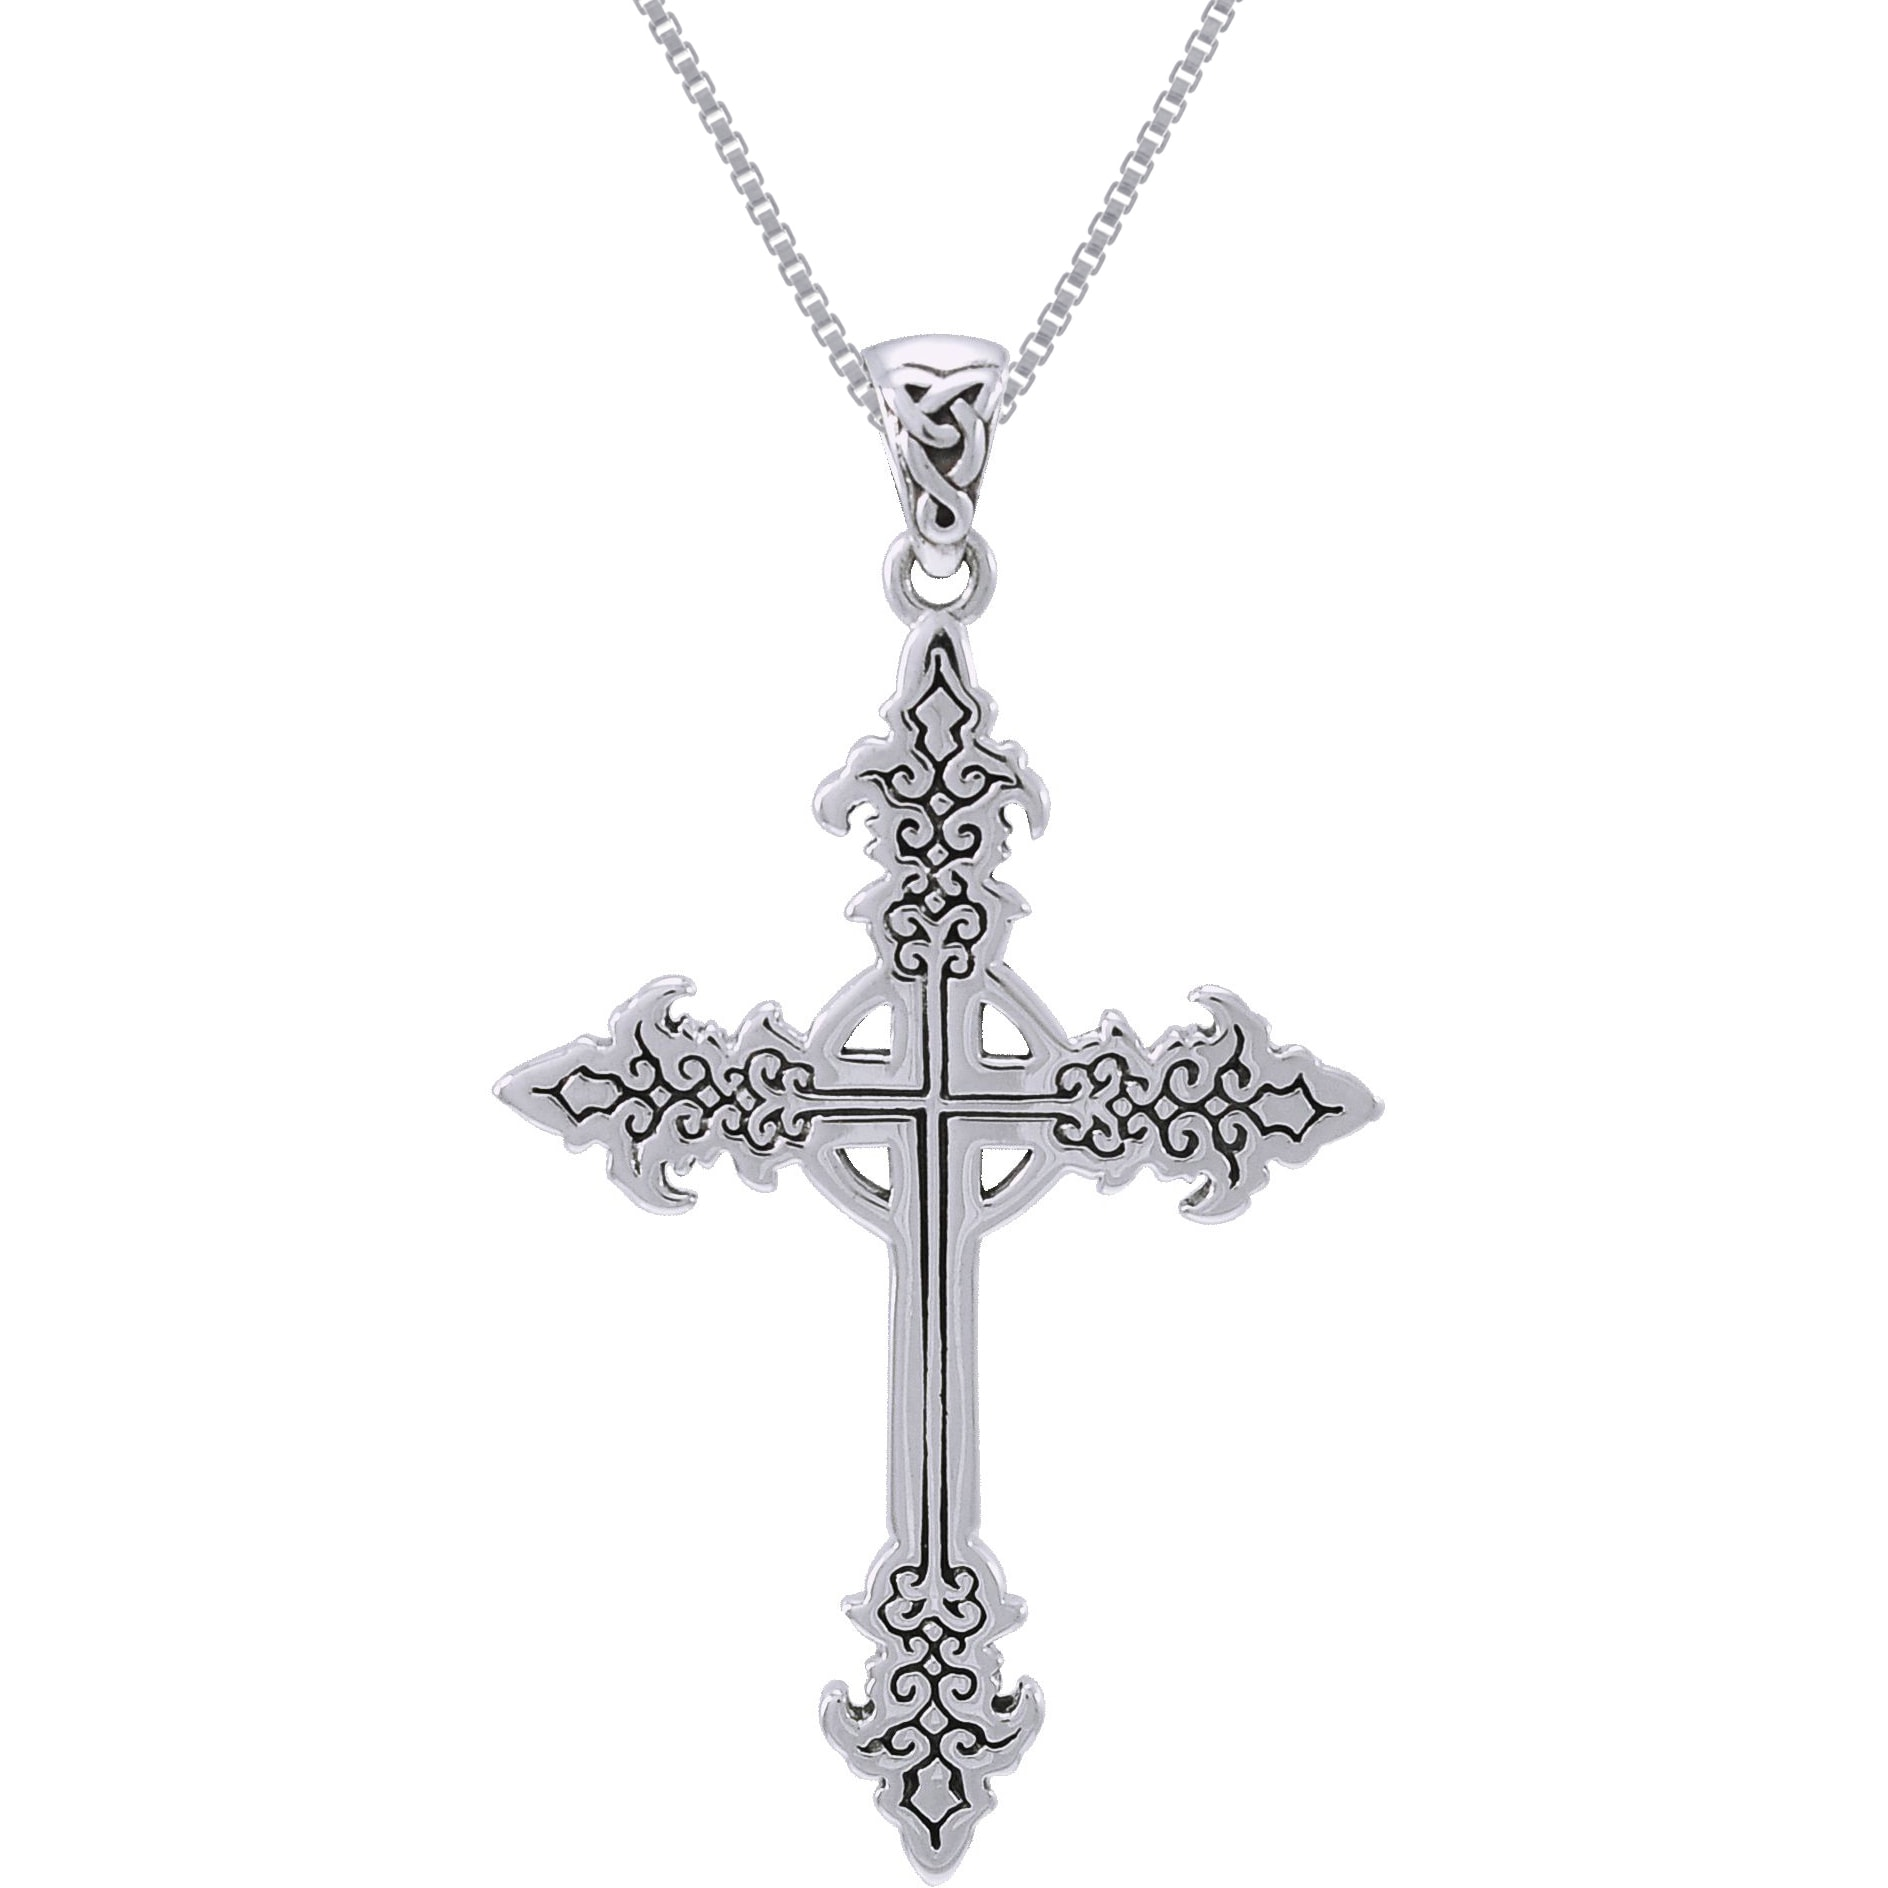 jewelry necklace bling cross sterling with pendant gemstone silver garnet celtic